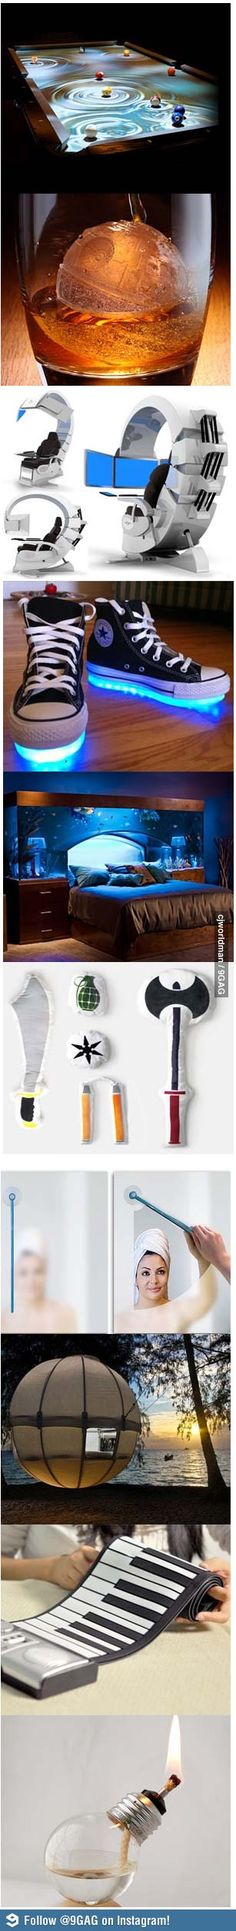 All the want. i really like the aquarium bed.